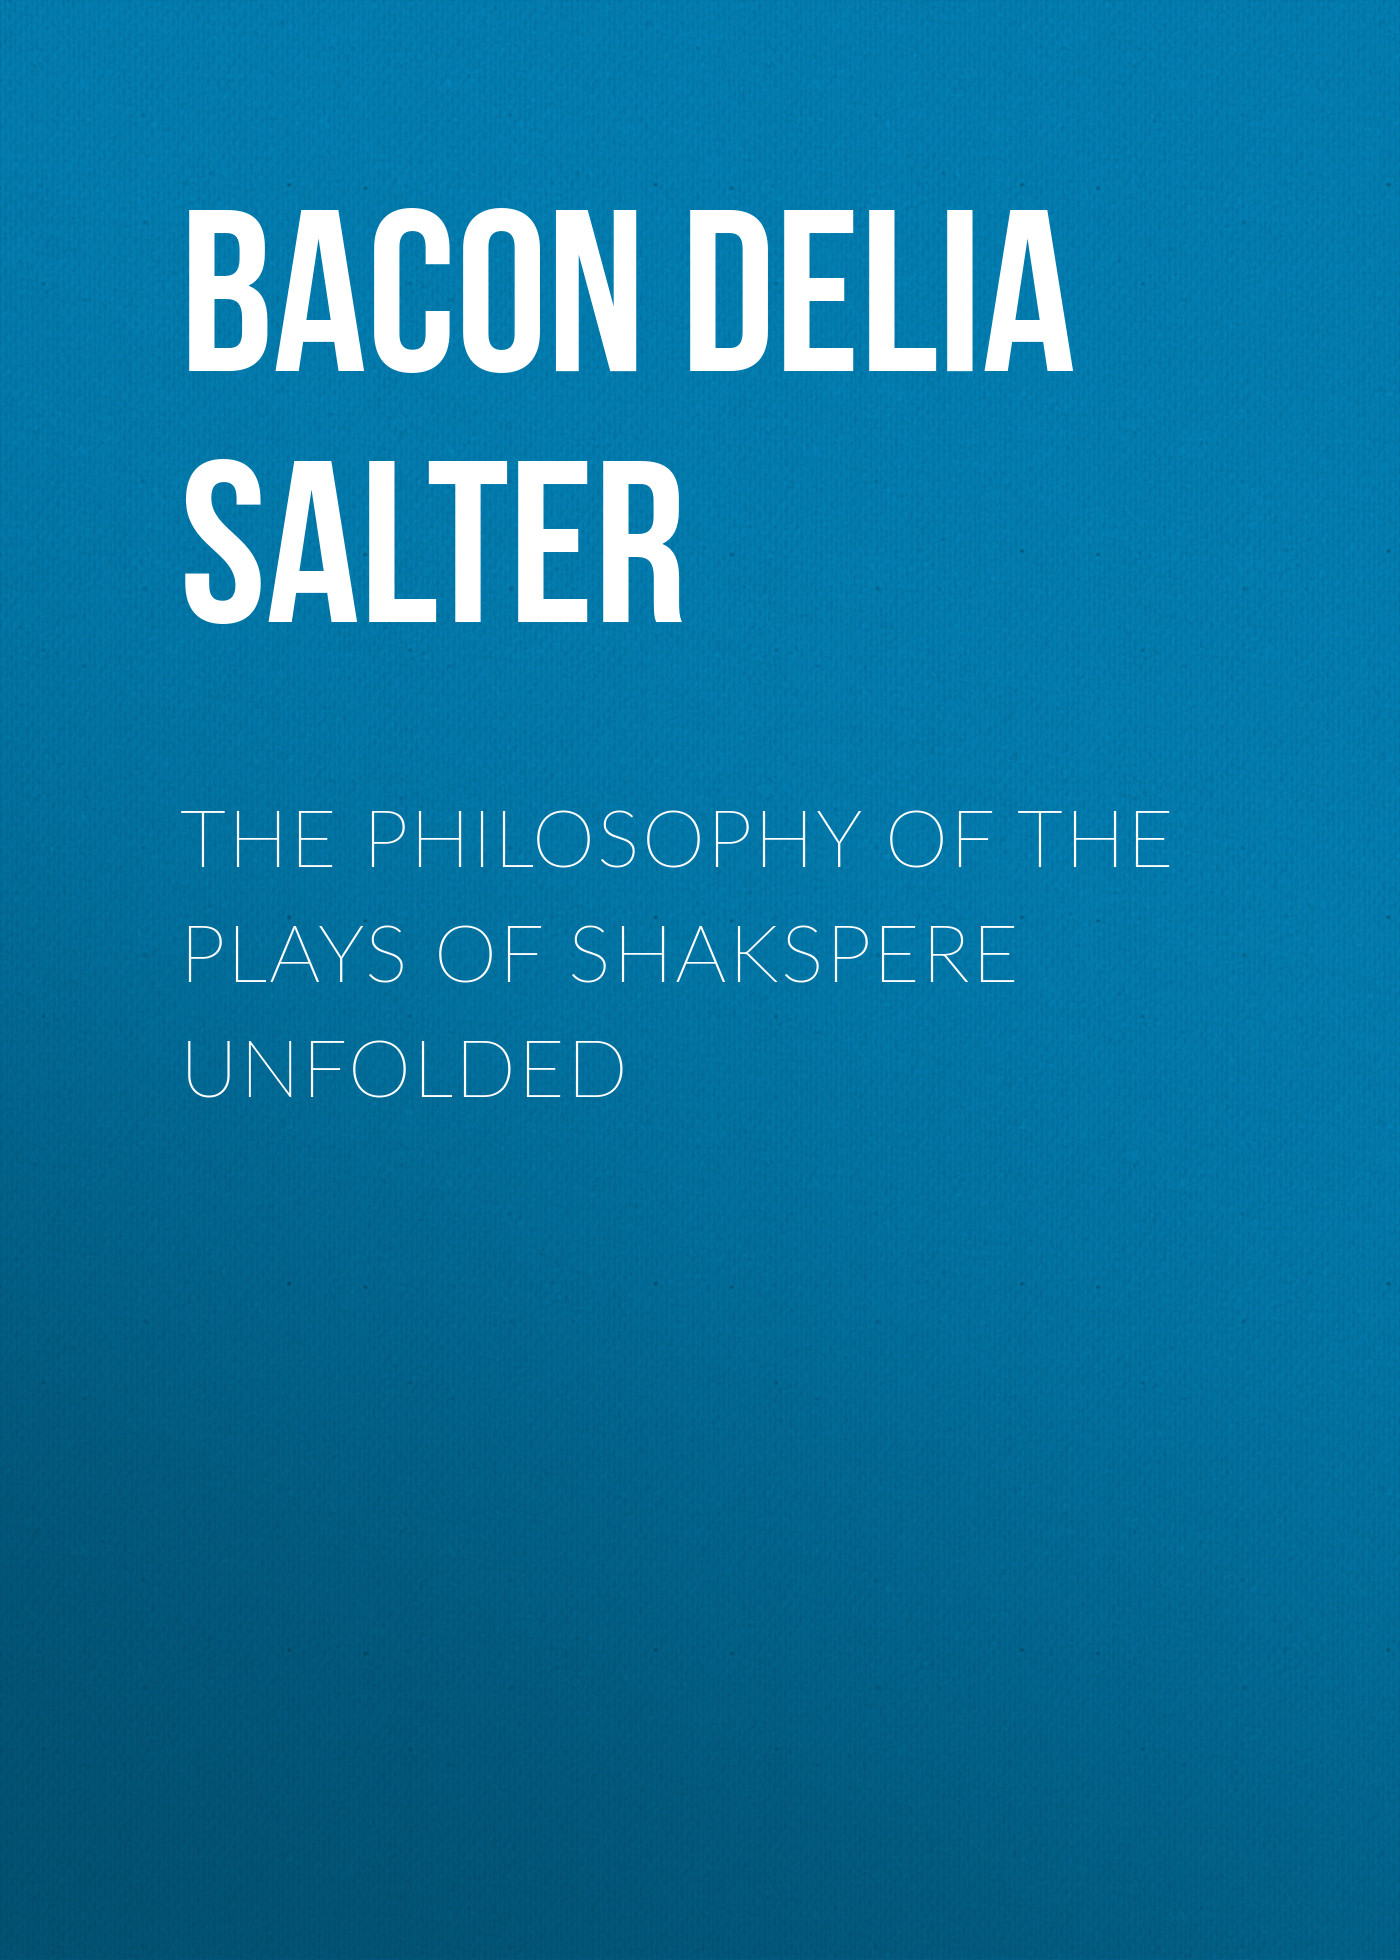 Bacon Delia Salter The Philosophy of the Plays of Shakspere Unfolded schmidt p trans the plays of anton chekhov